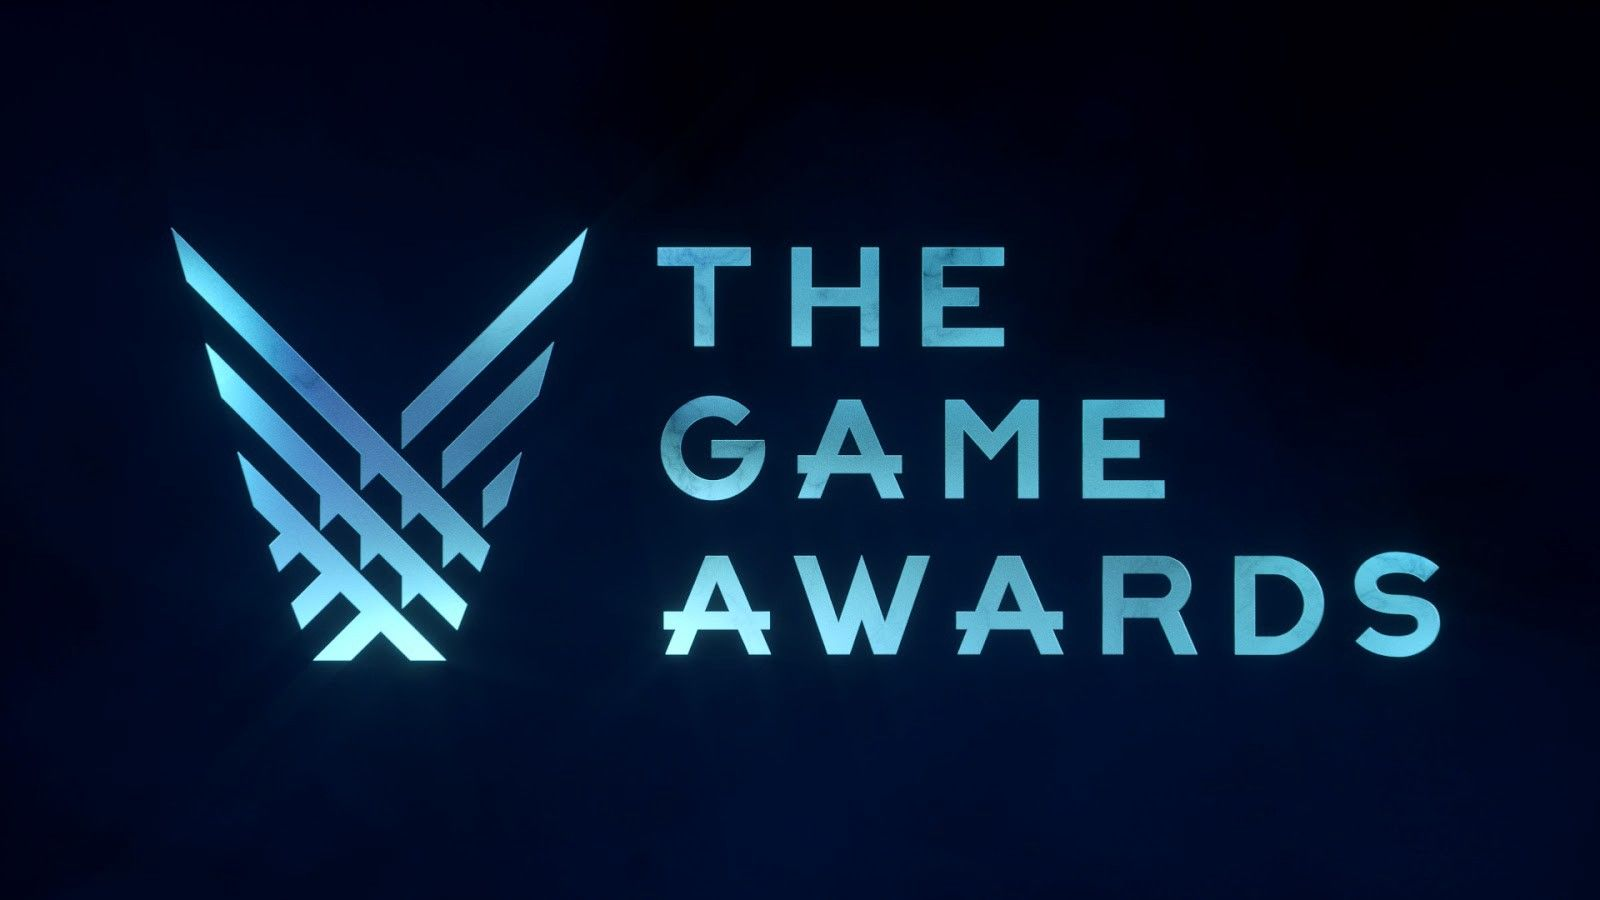 the-game-awards-viewership-logo